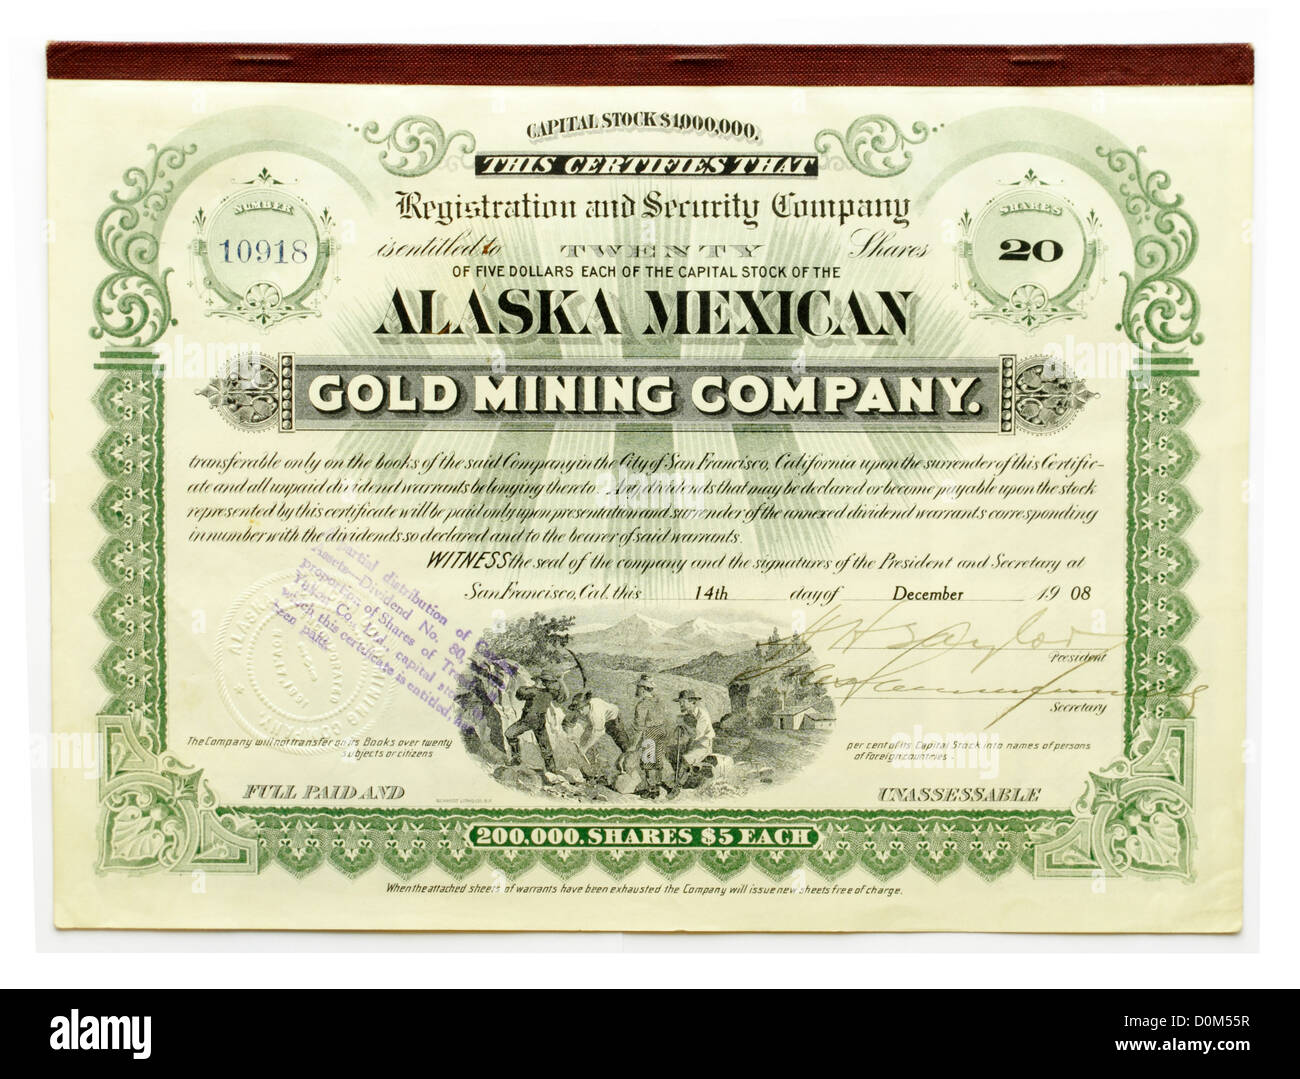 Share certificate of the Alaska Mexican Gold Mining Company Gold ...